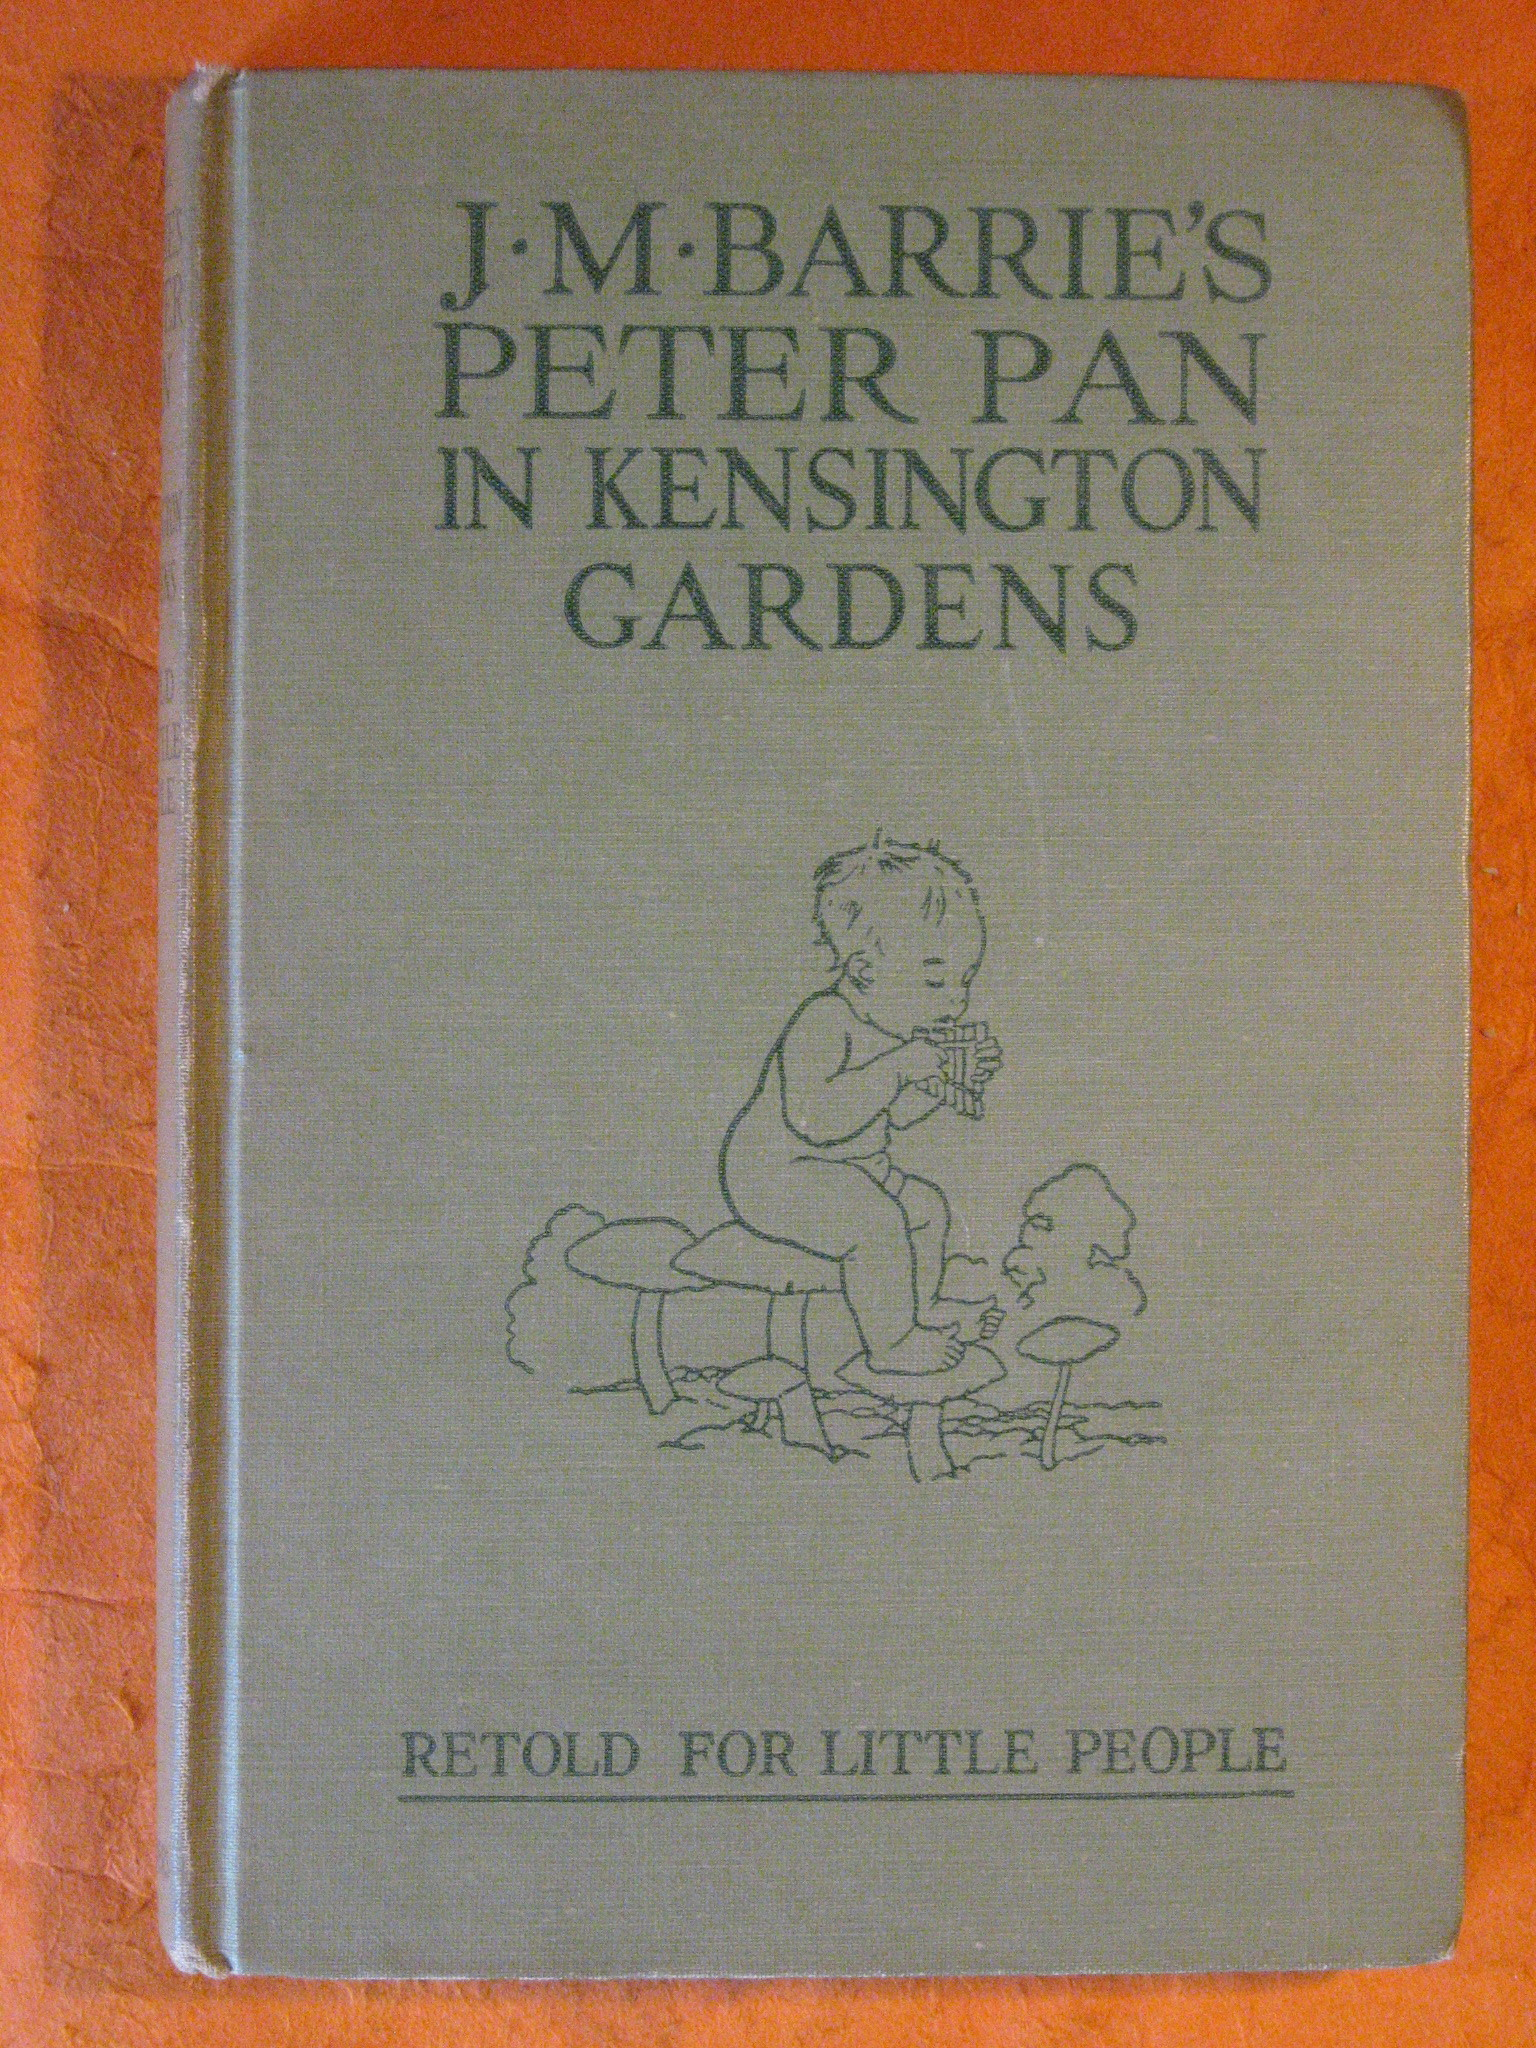 Peter Pan in Kensington Gardens Retold By May Byron for Little People with the Permission of the Author, Barrie, J.M.